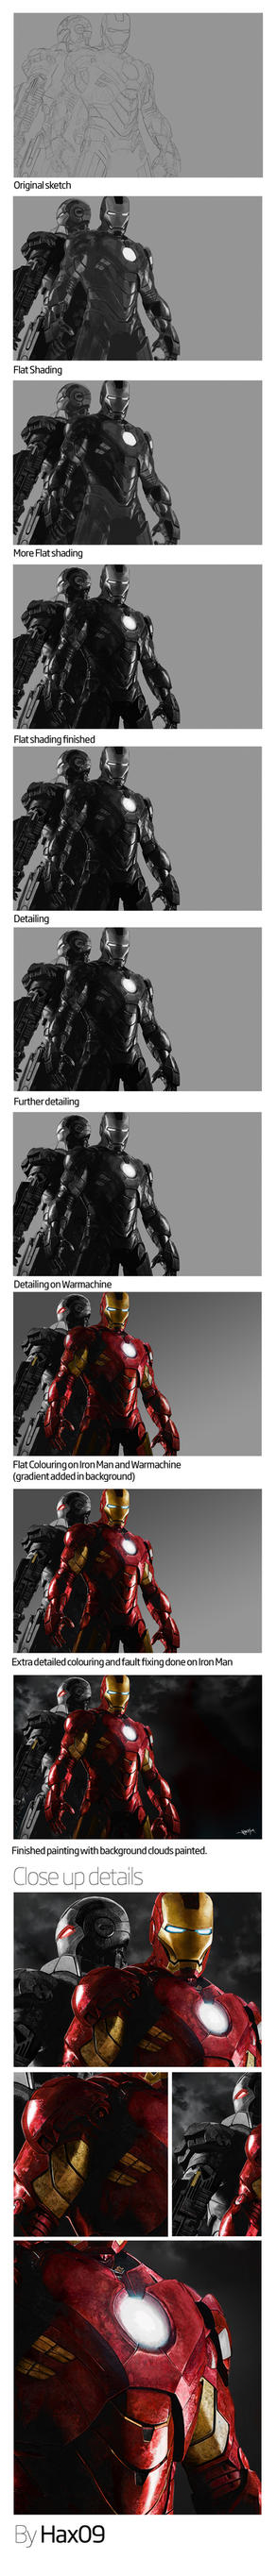 Iron Man and WarMachine WIP by Hax09